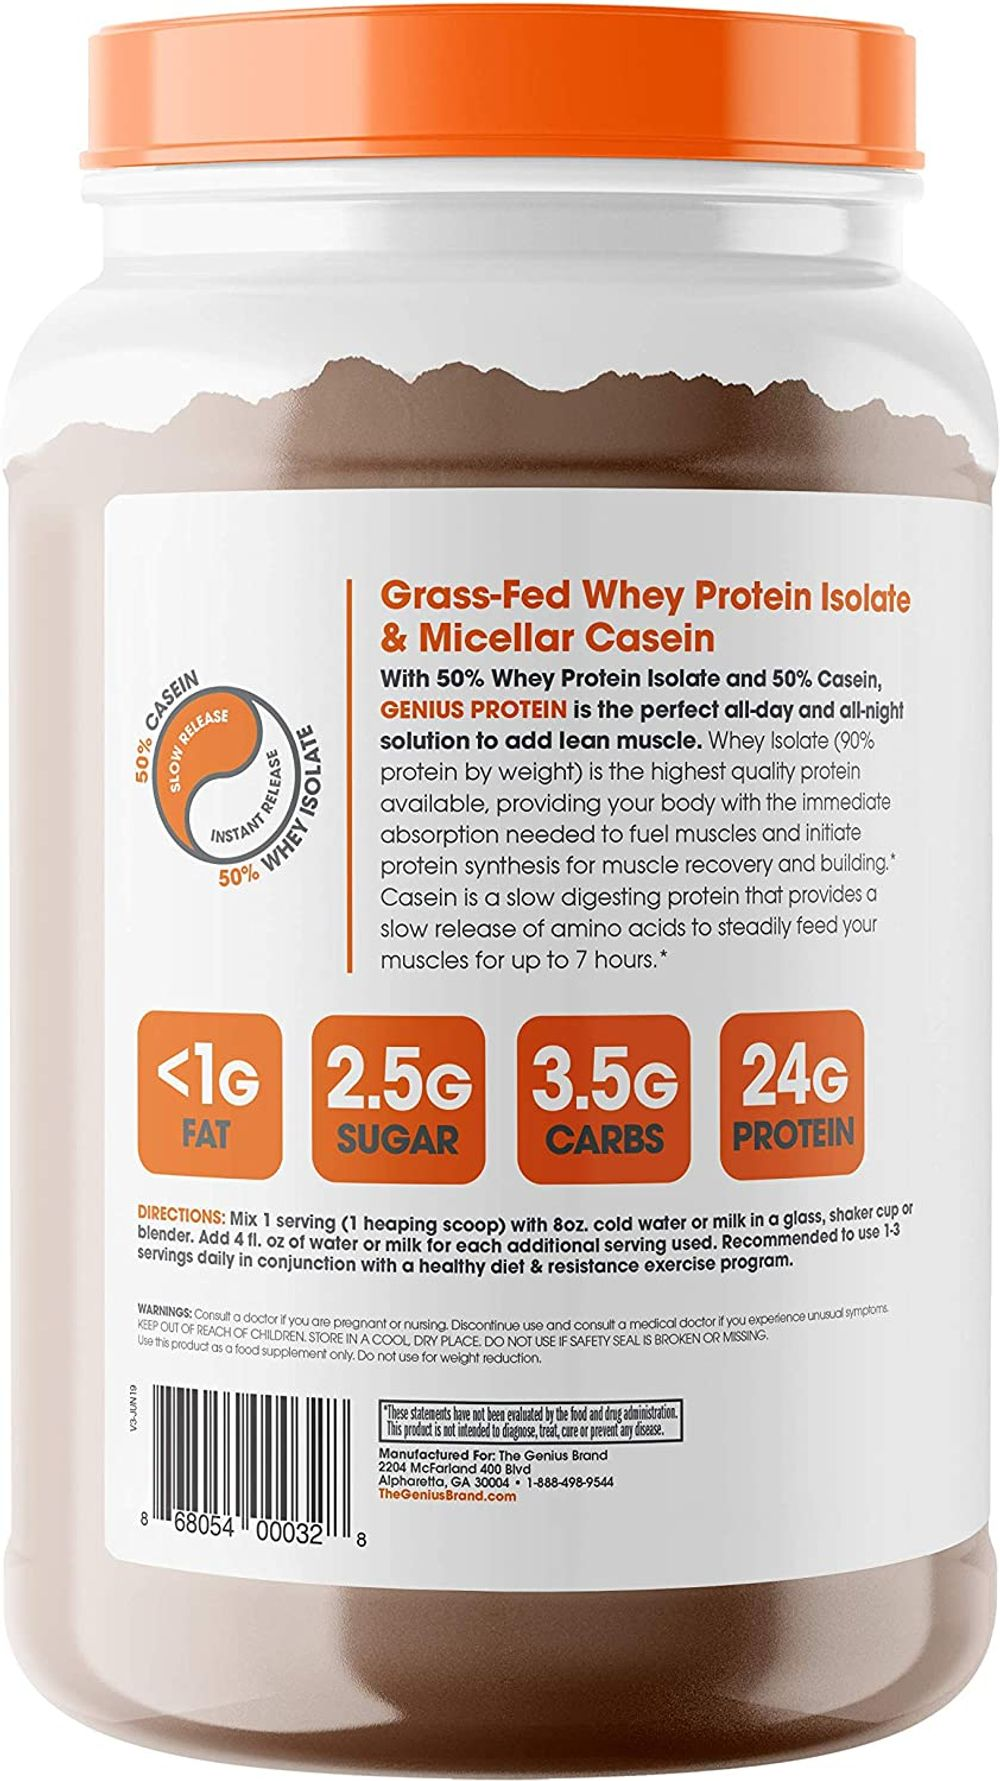 Genius Protein Powder - Natural Whey Protein Isolate & Micellar Casein Lean Muscle Building